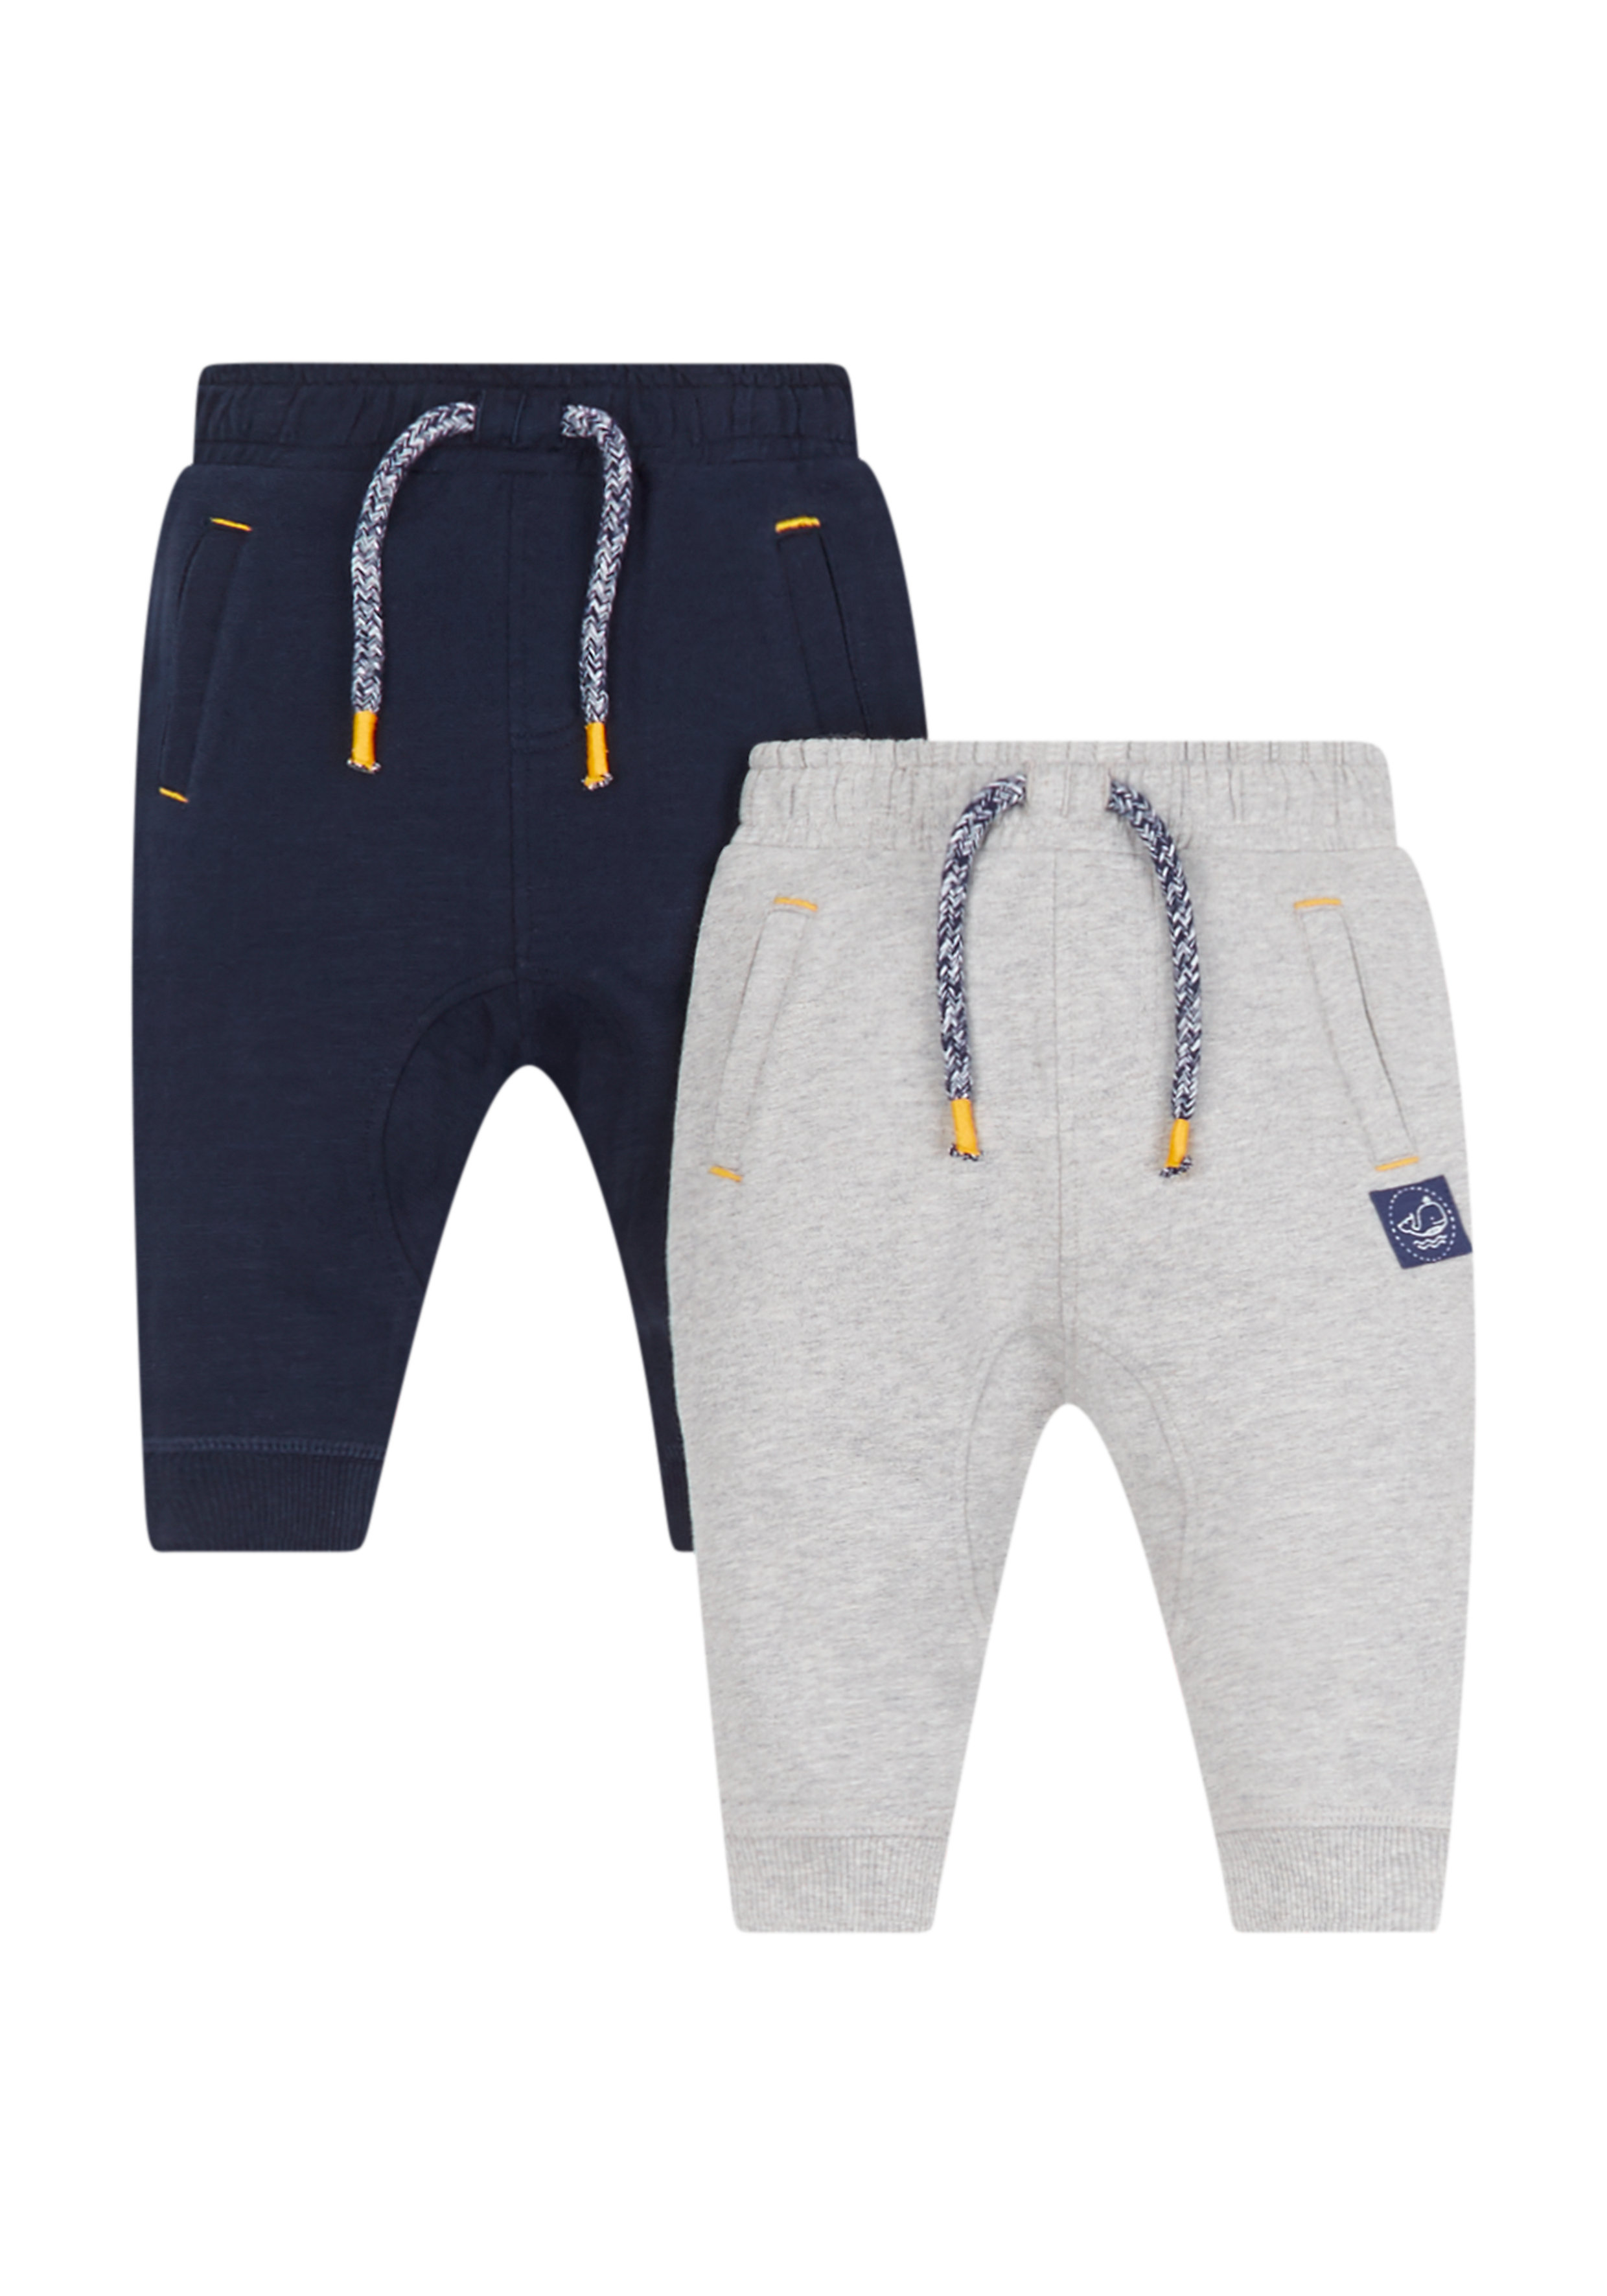 Mothercare   Boys Grey Marl And Navy Joggers - 2 Pack - Grey And Blue